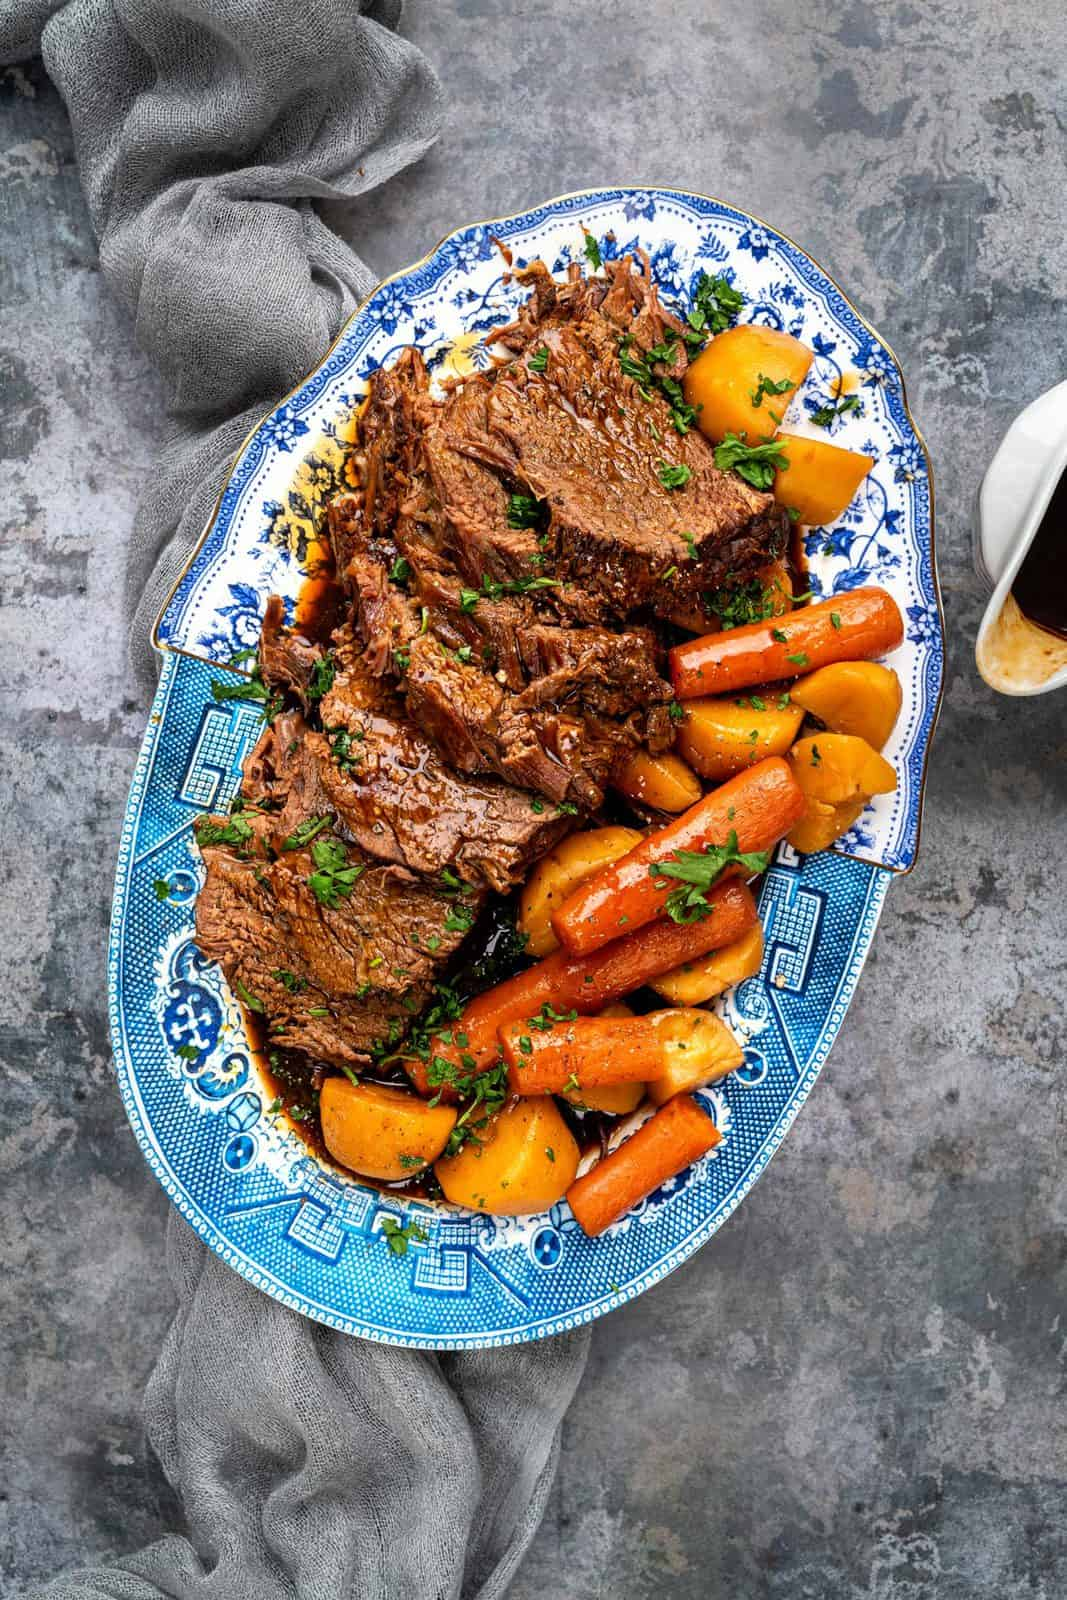 Platter of slow cooker beef roast with carrots and potatoes